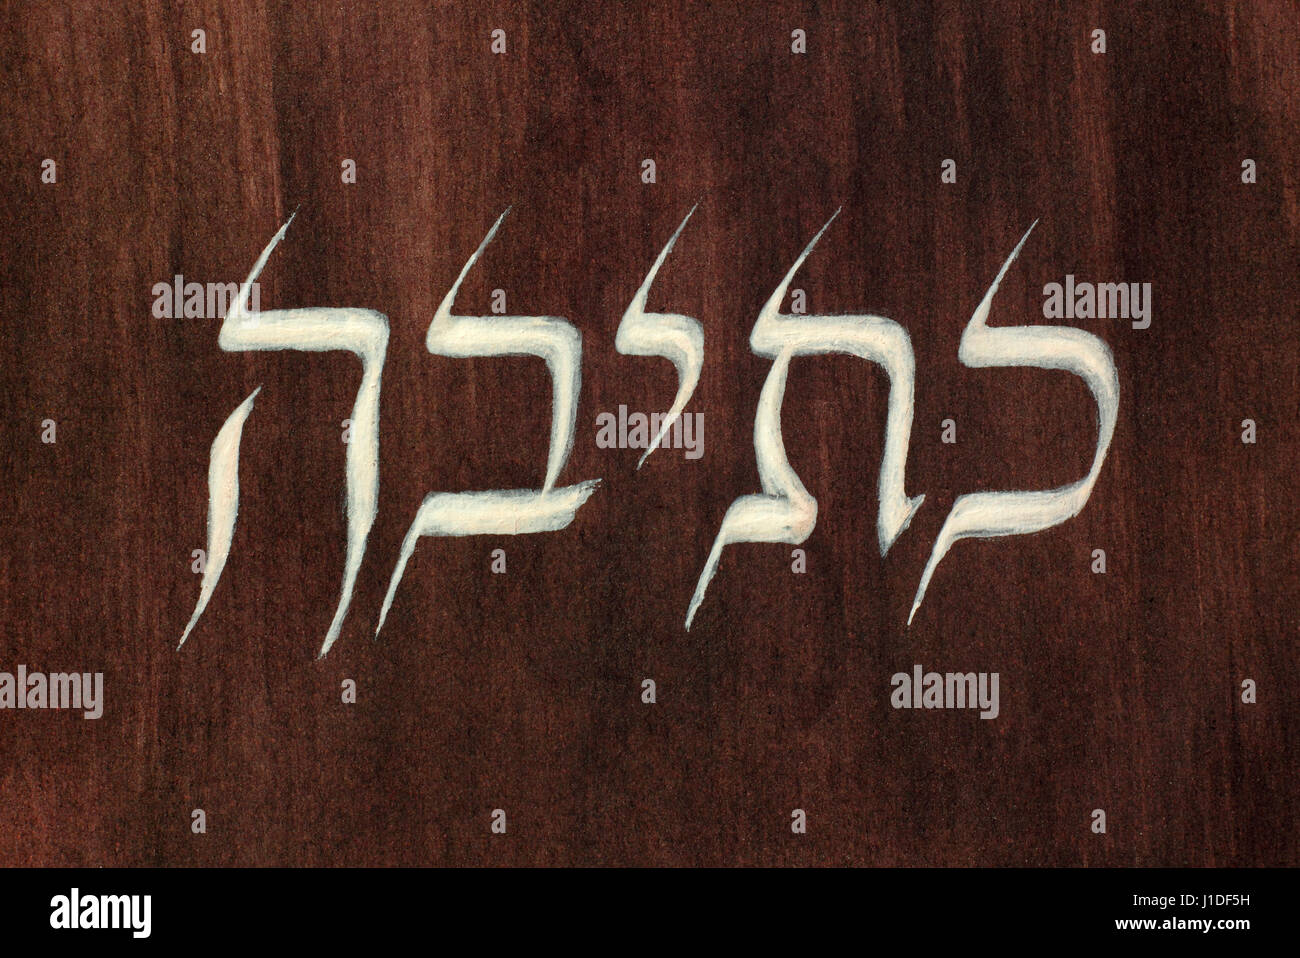 Painted word writing in hebrew language and script on the dark painted paper - Stock Image